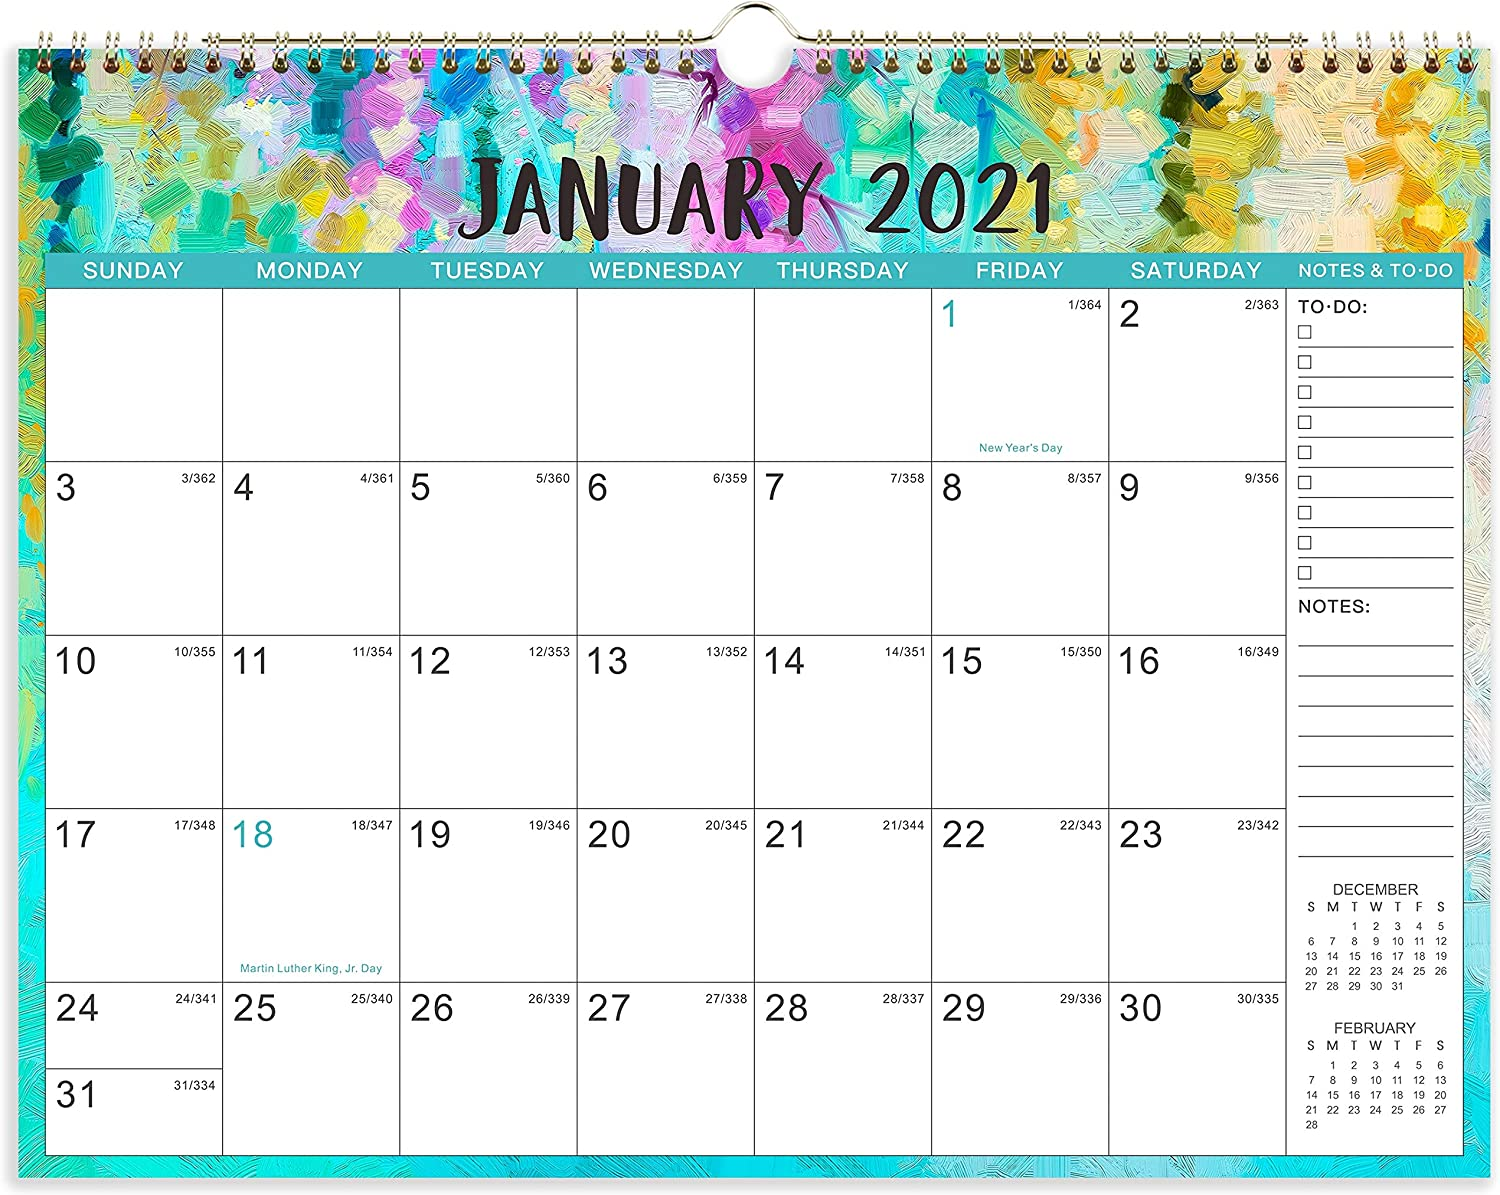 "2021 Calendar - 12 Monthly Wall Calendar with Thick Paper, 14"" x 11"", Jan. 2021 - Dec. 2021, Twin-Wire Binding + Hanging Hook + Unuled Blocks with Julian Date, Horizontal - Oil Painting"